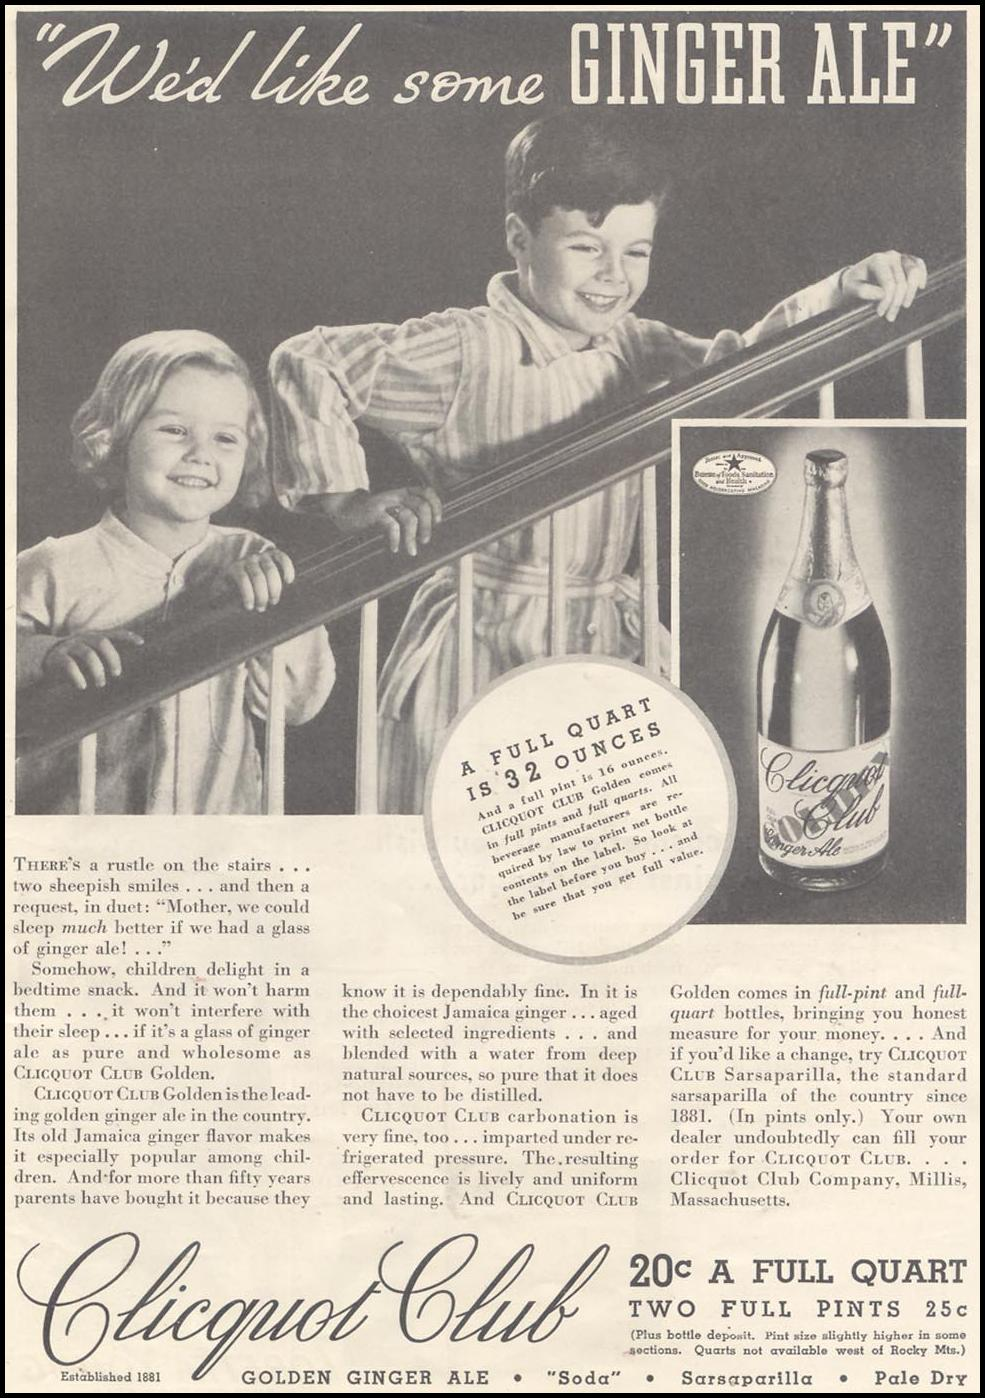 CLICQUOT CLUB GOLDEN GINGER ALE GOOD HOUSEKEEPING 03/01/1935 p. 9